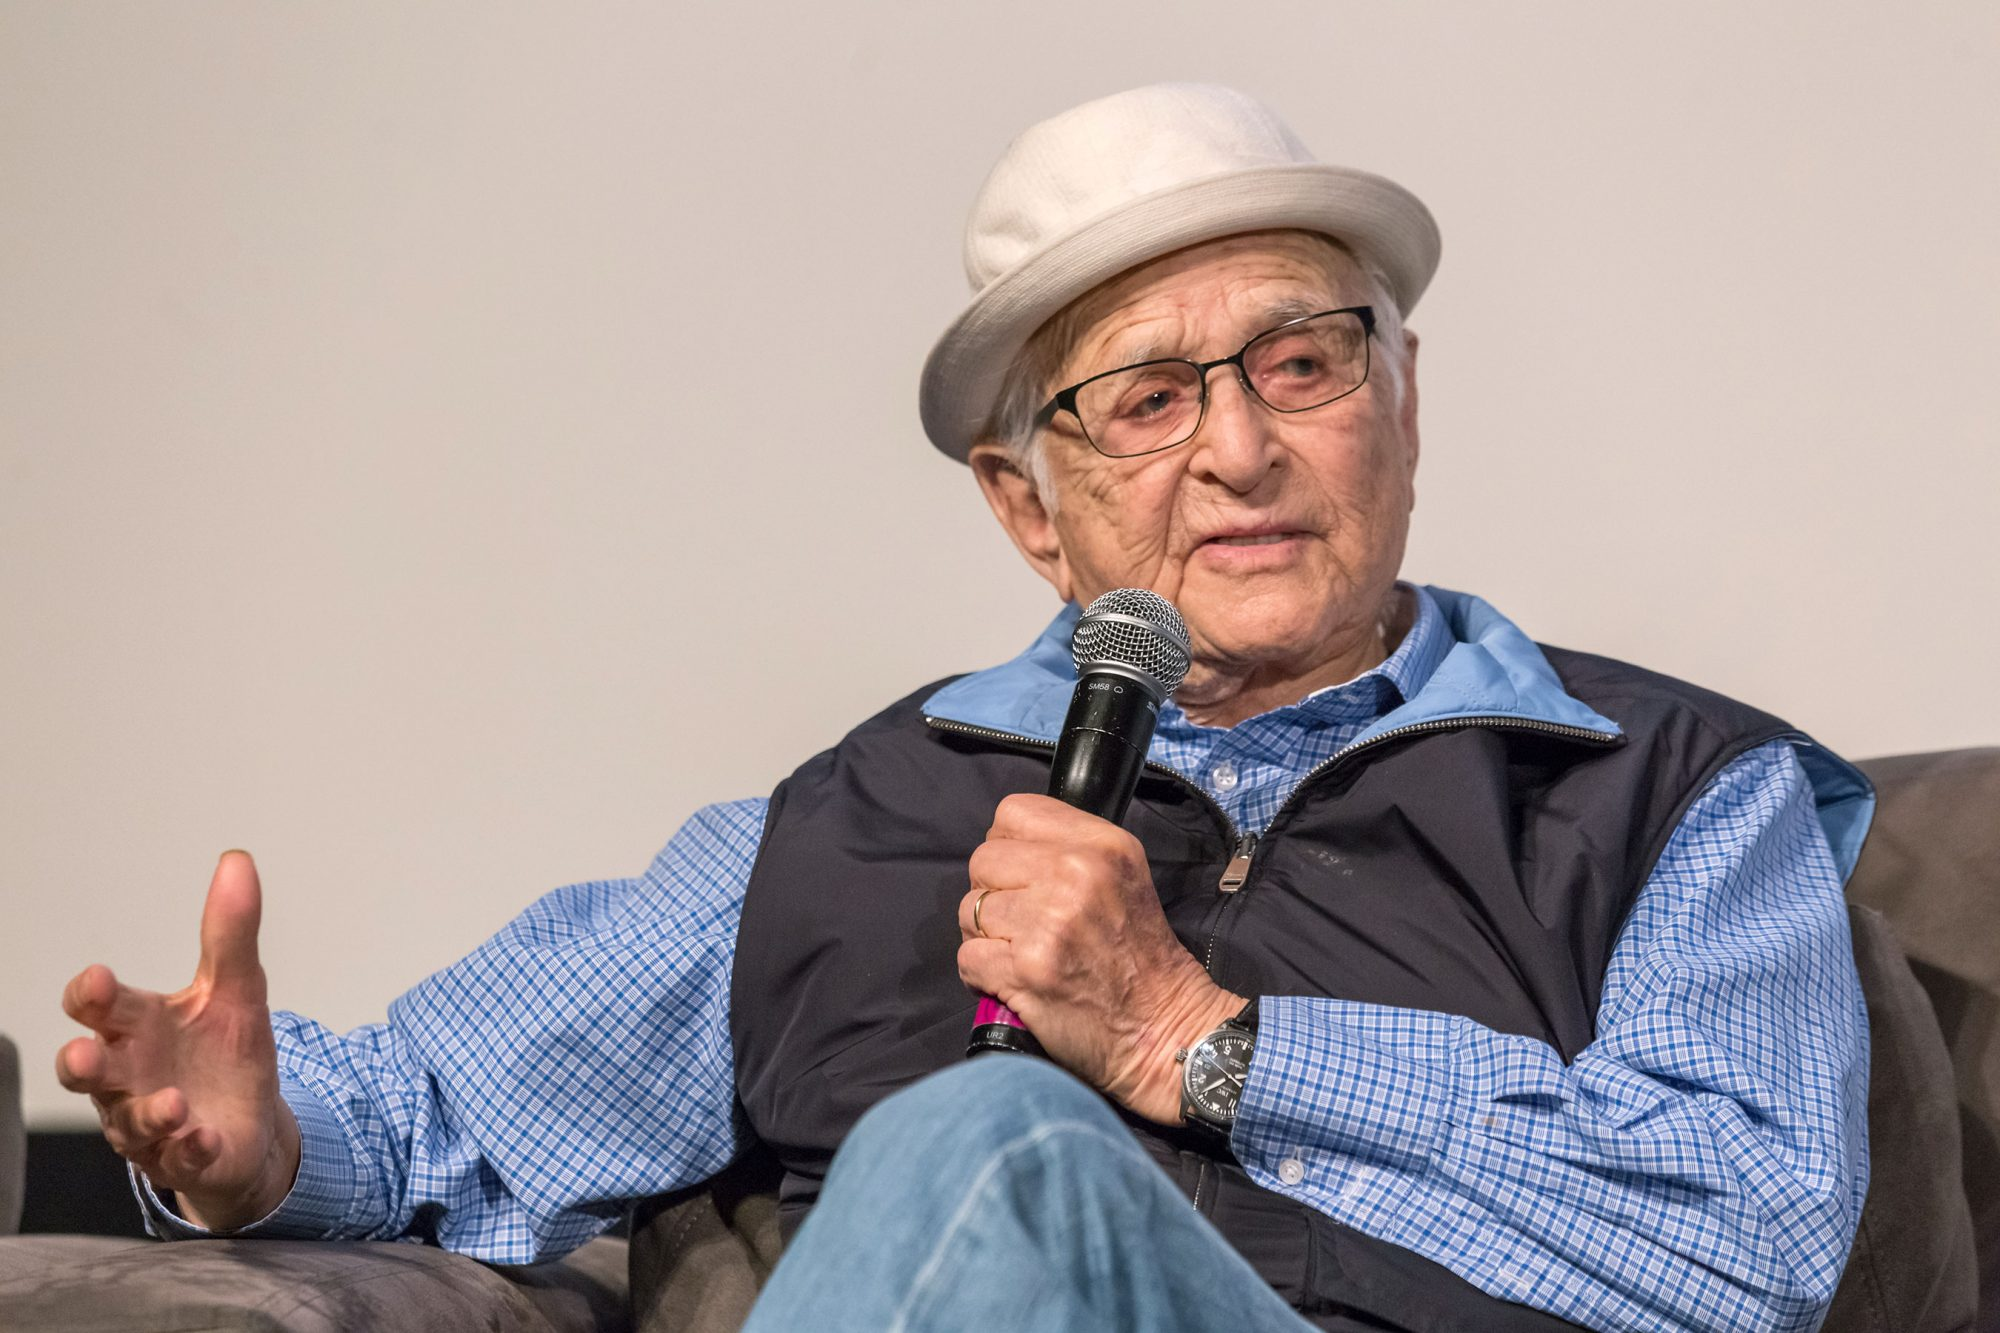 Norman Lear And Chuck Lorre Conversation